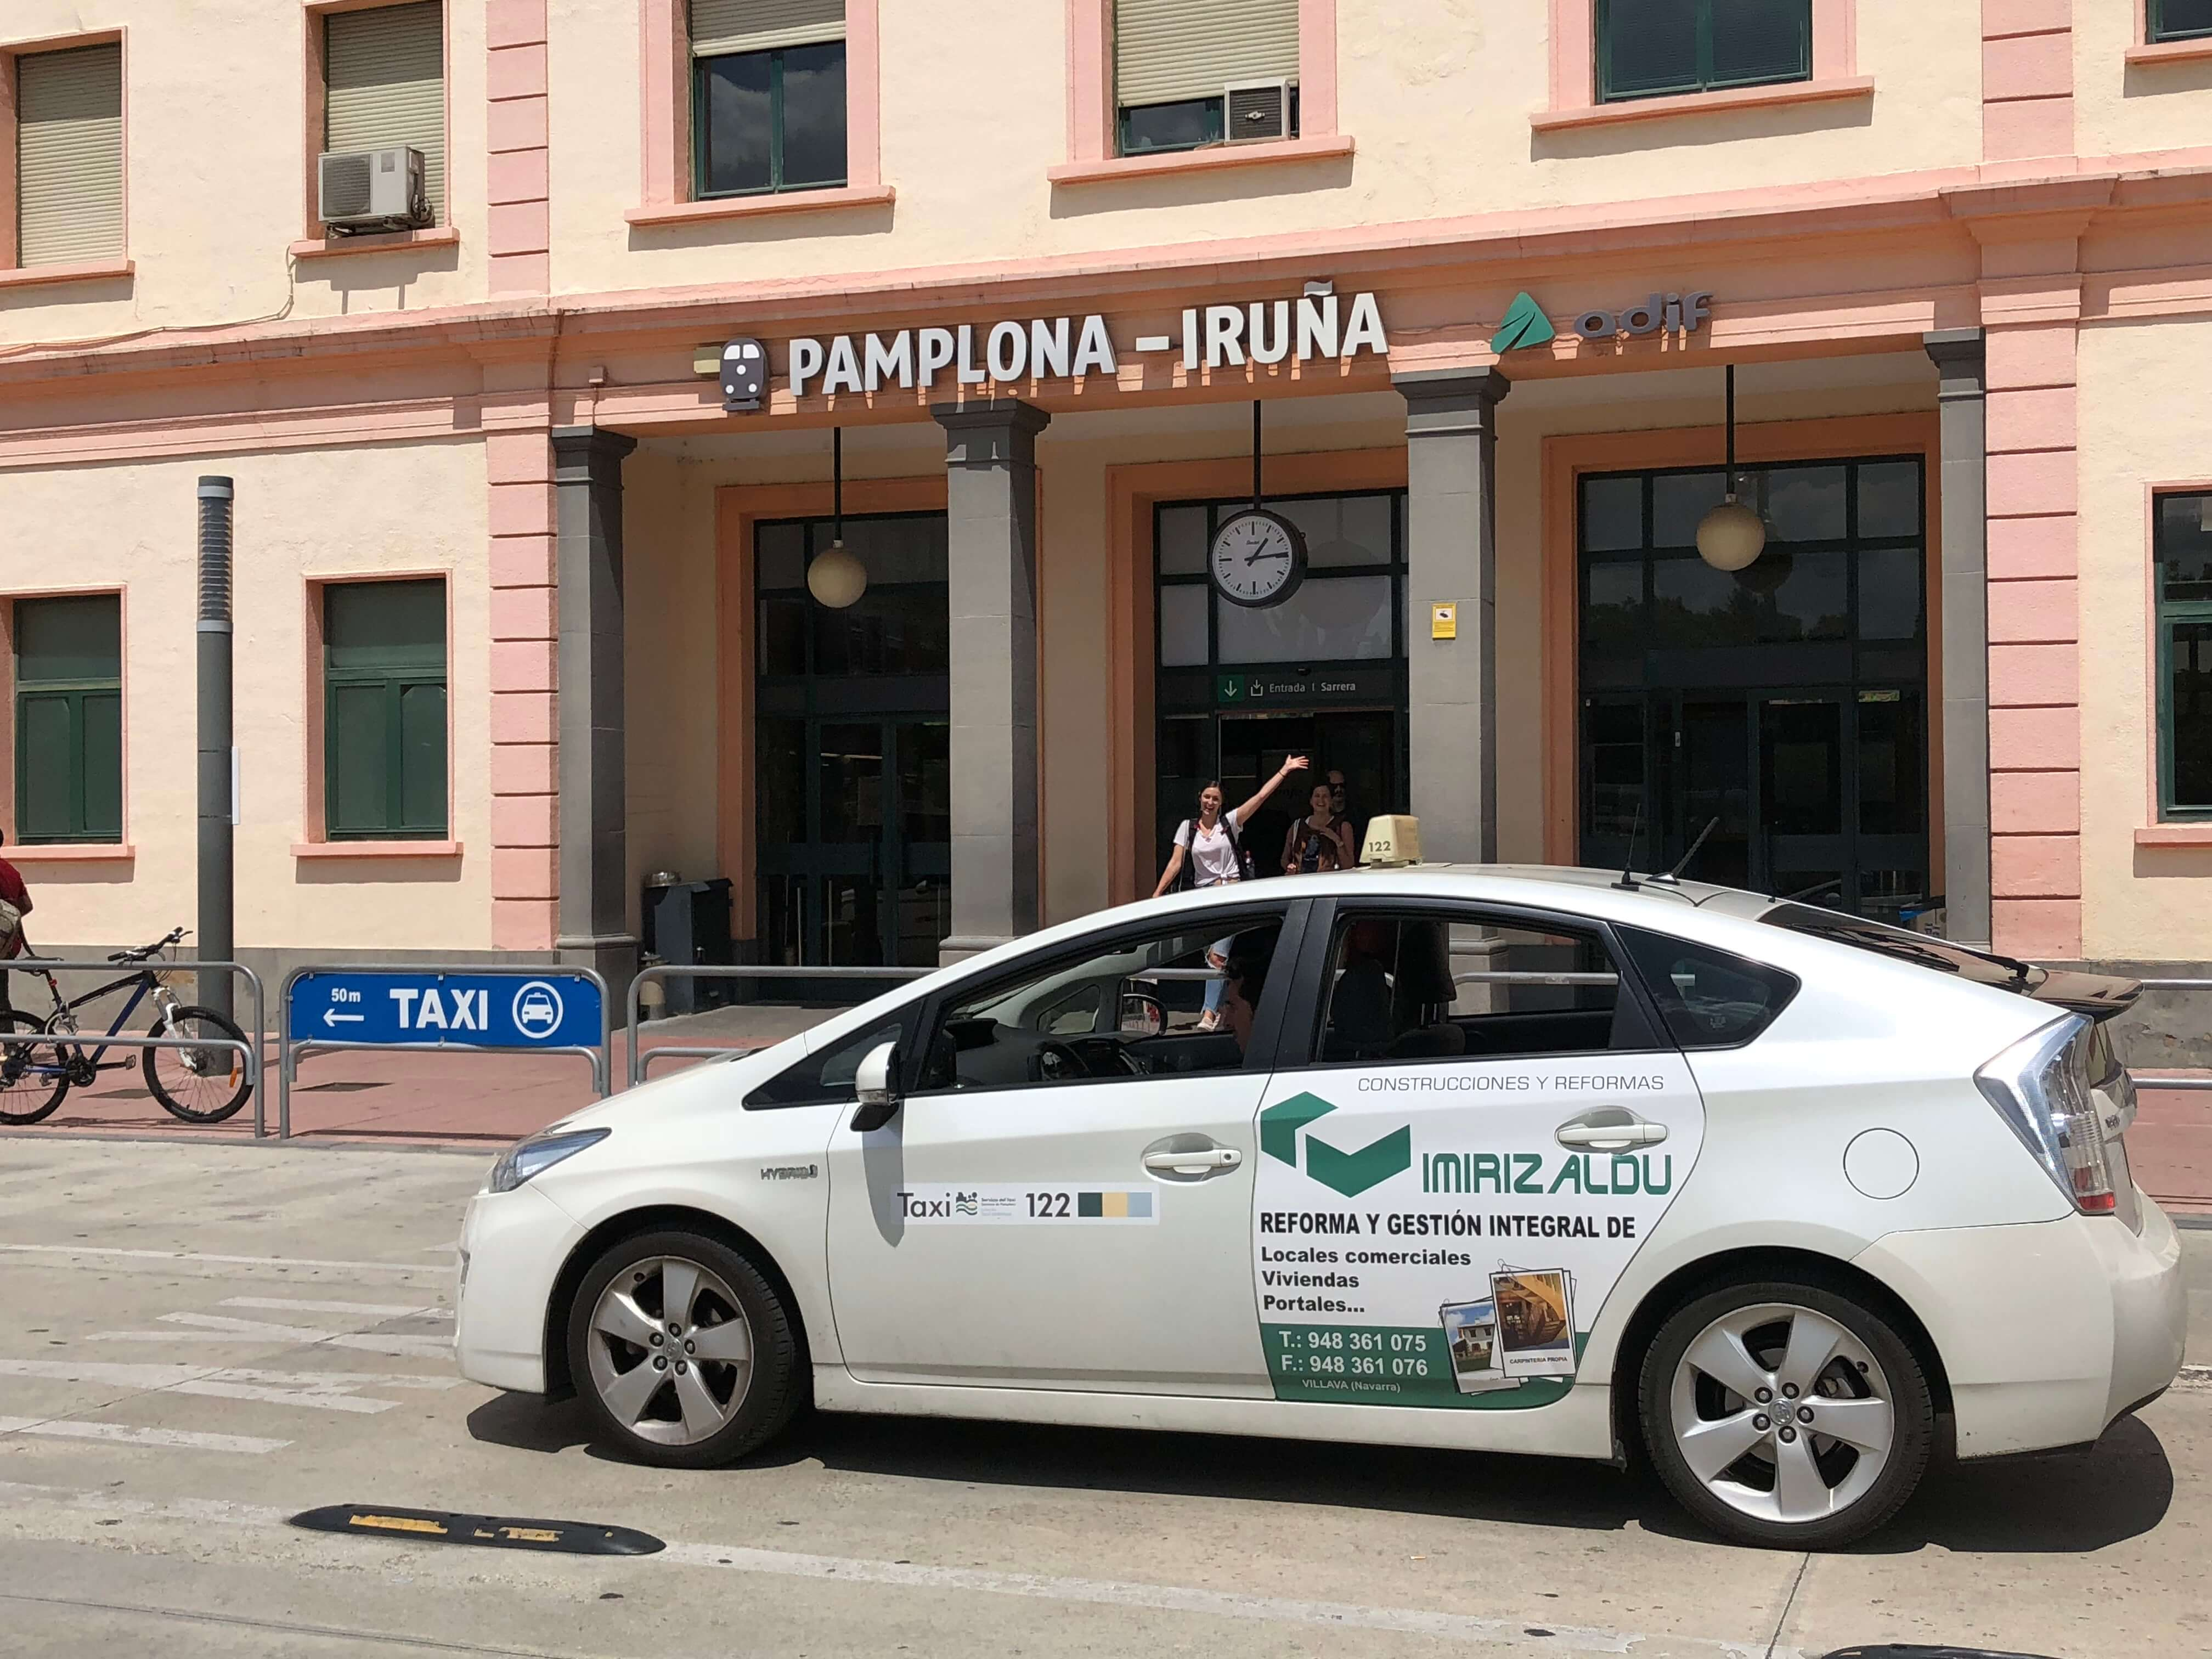 Where is Pamplona? How to Get to Pamplona, Spain and More